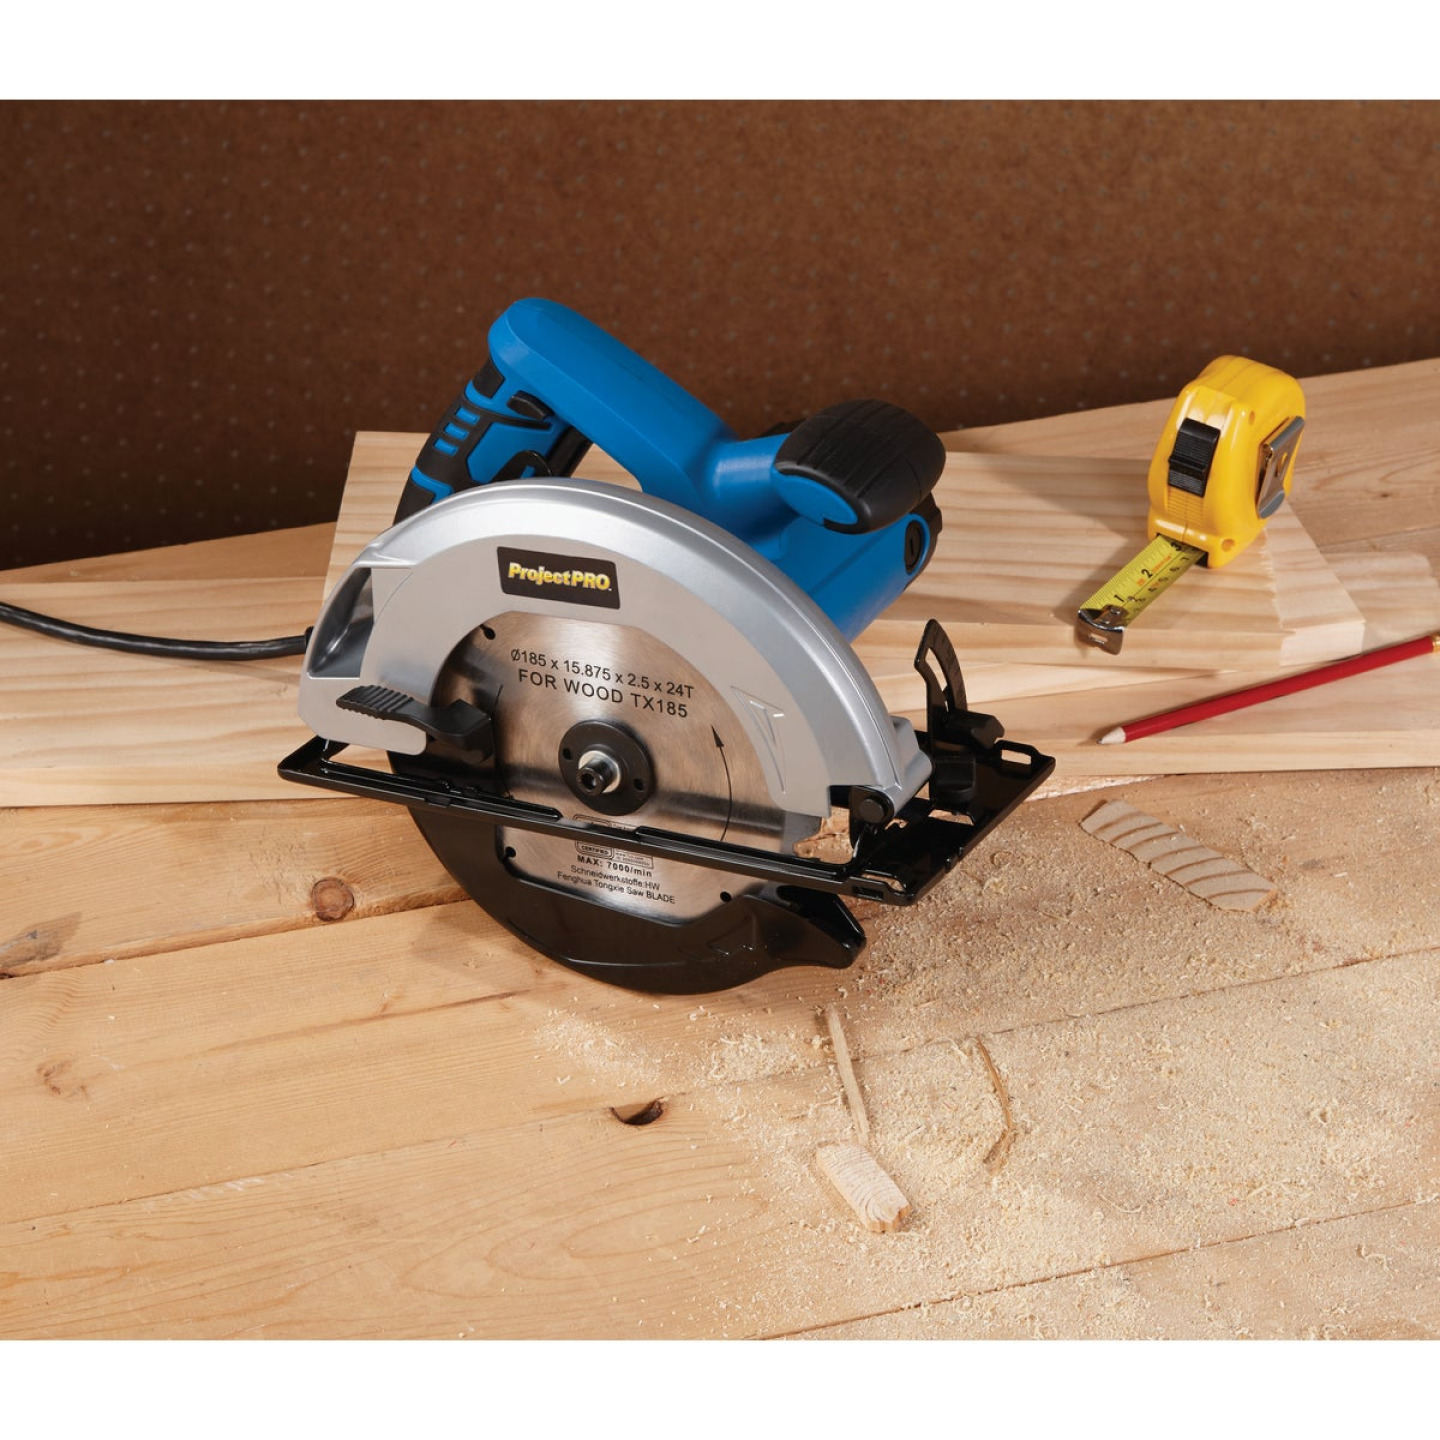 Project Pro 7-1/4 In. 12-Amp Circular Saw Image 2